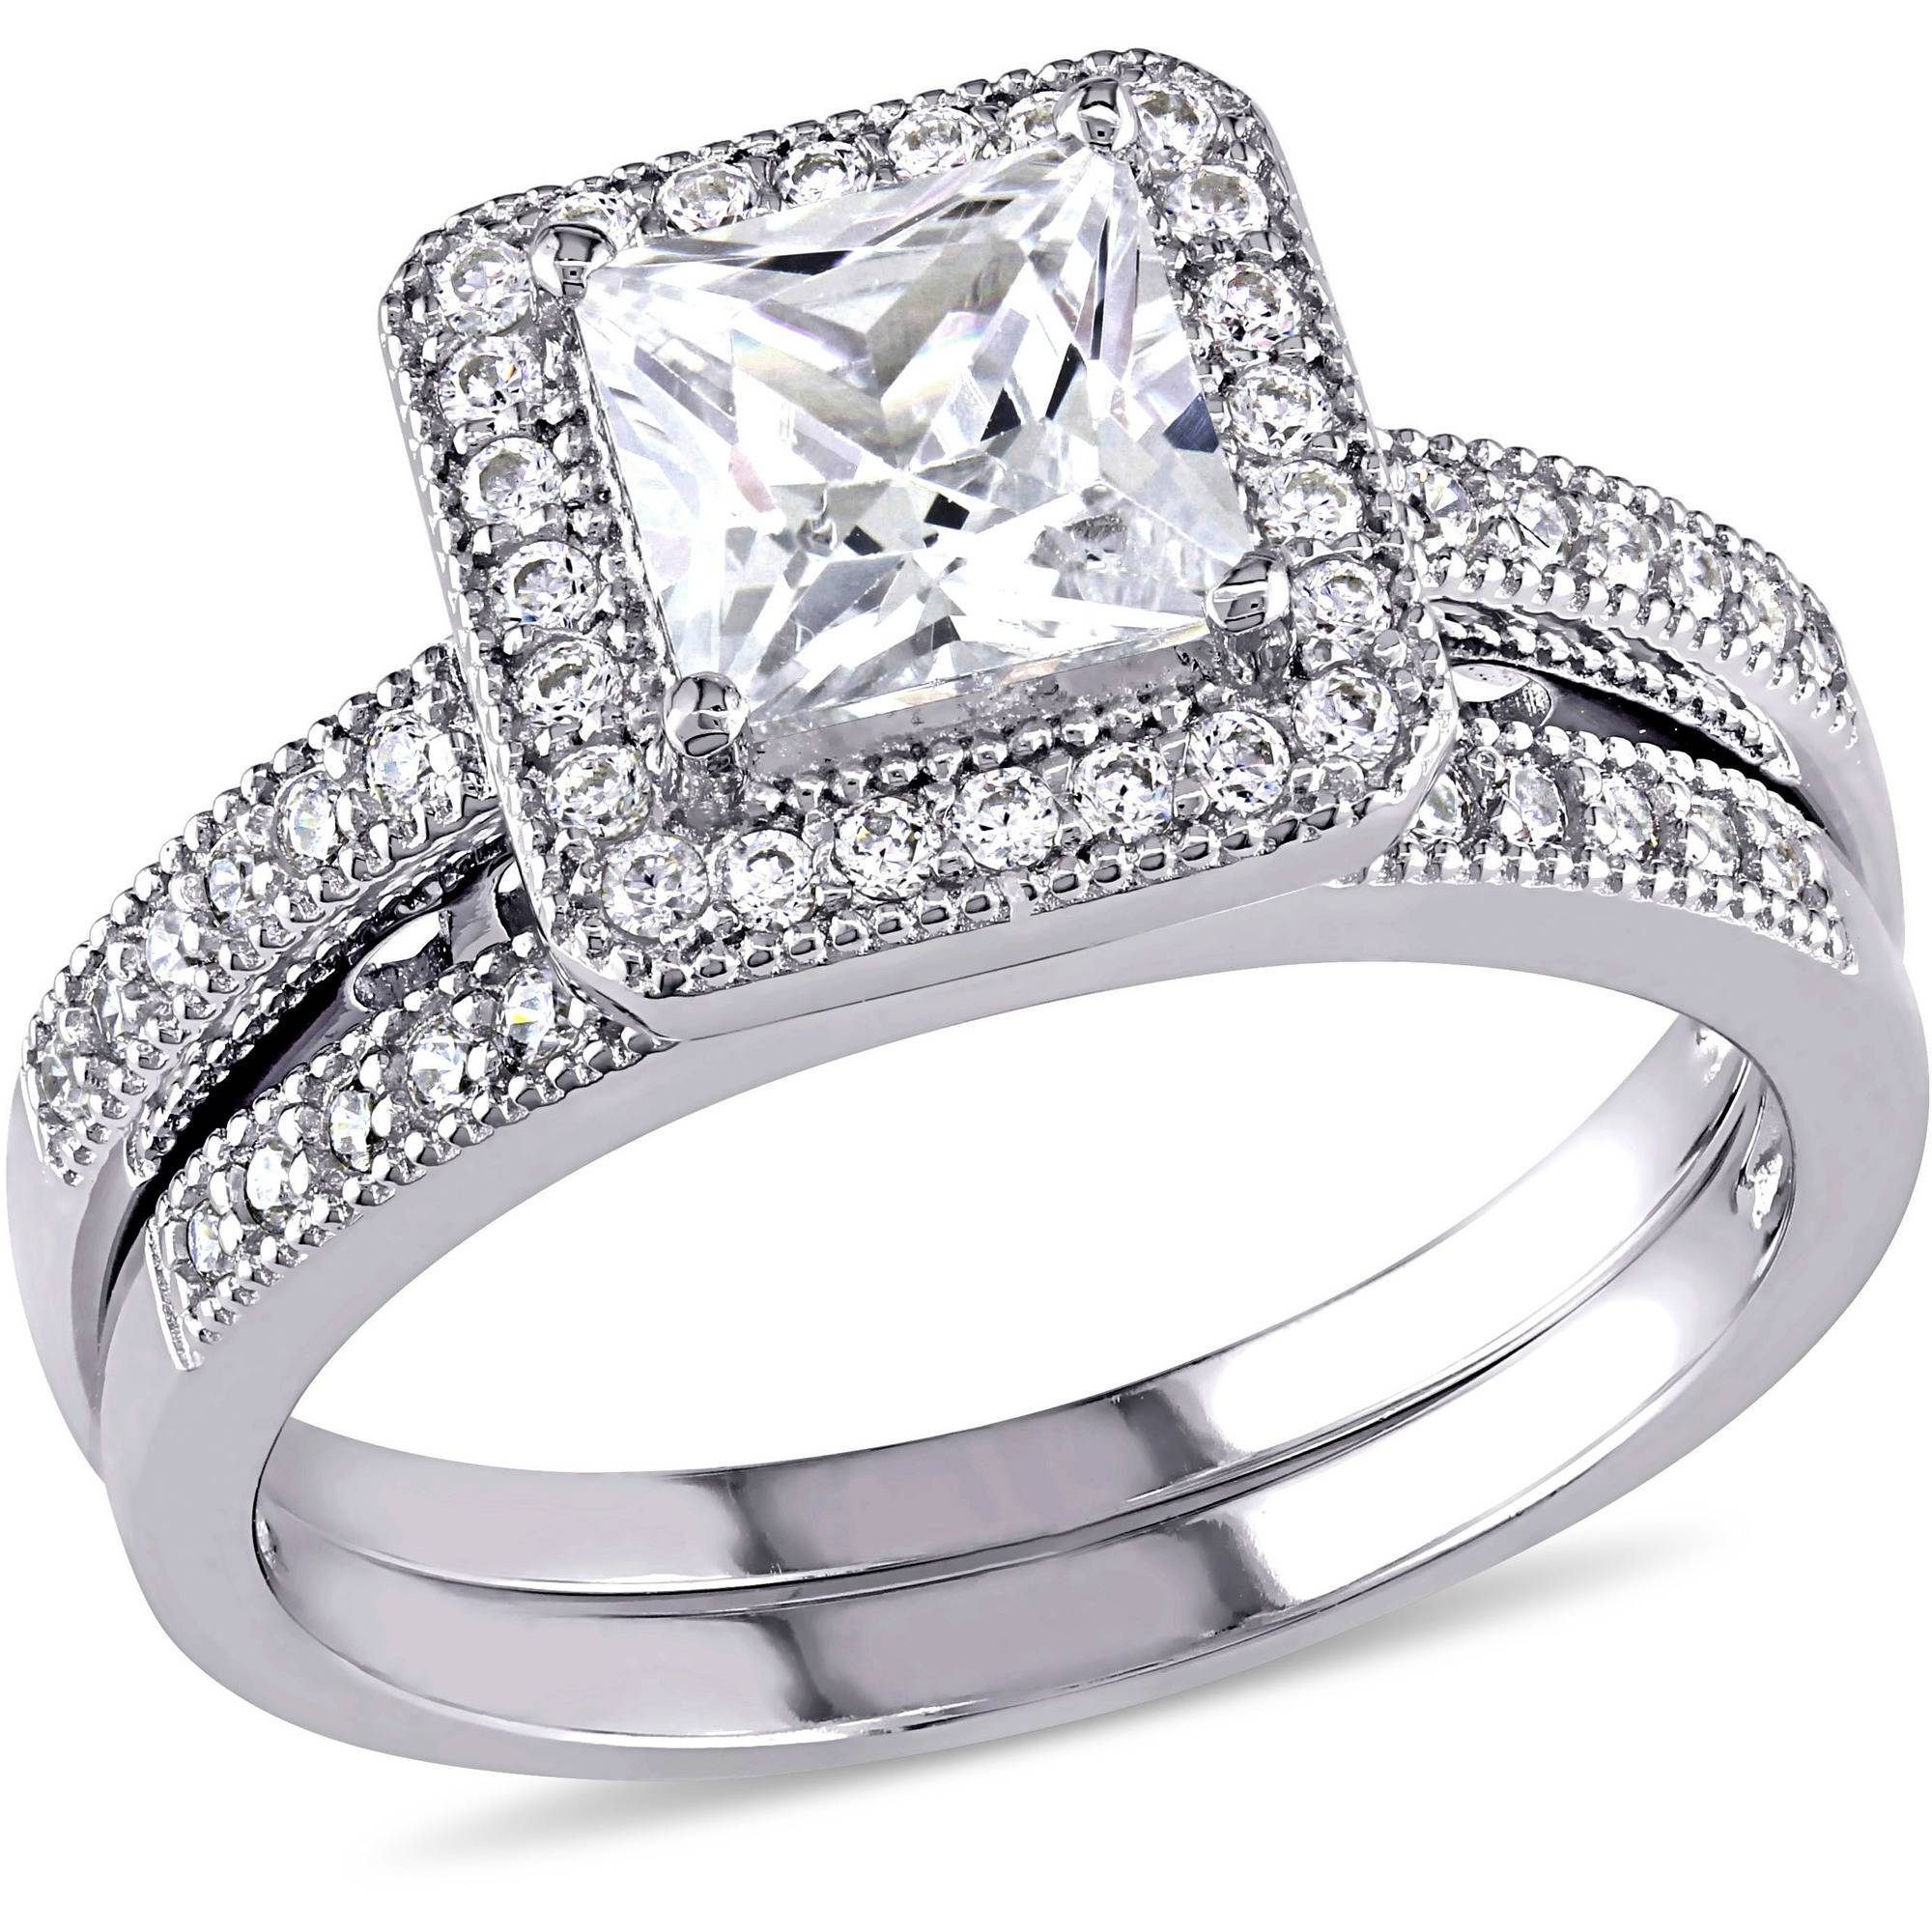 15 Photo Of Walmart Mens Engagement Rings